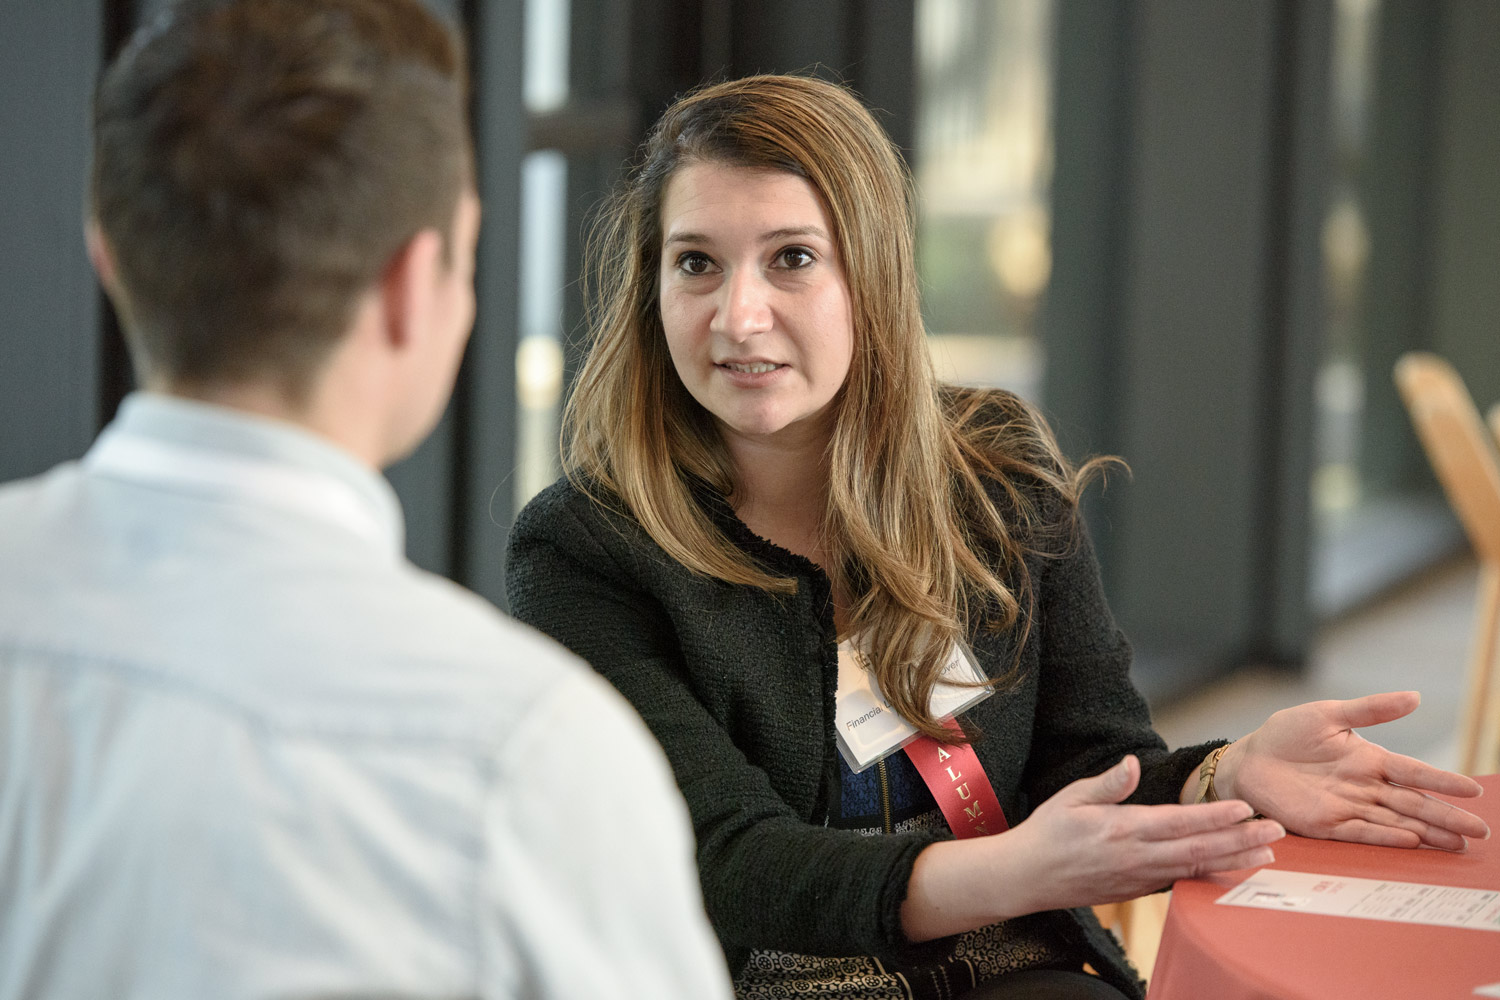 Erika Topete meets with a prospective graduate student at a recent event on financial literacy..